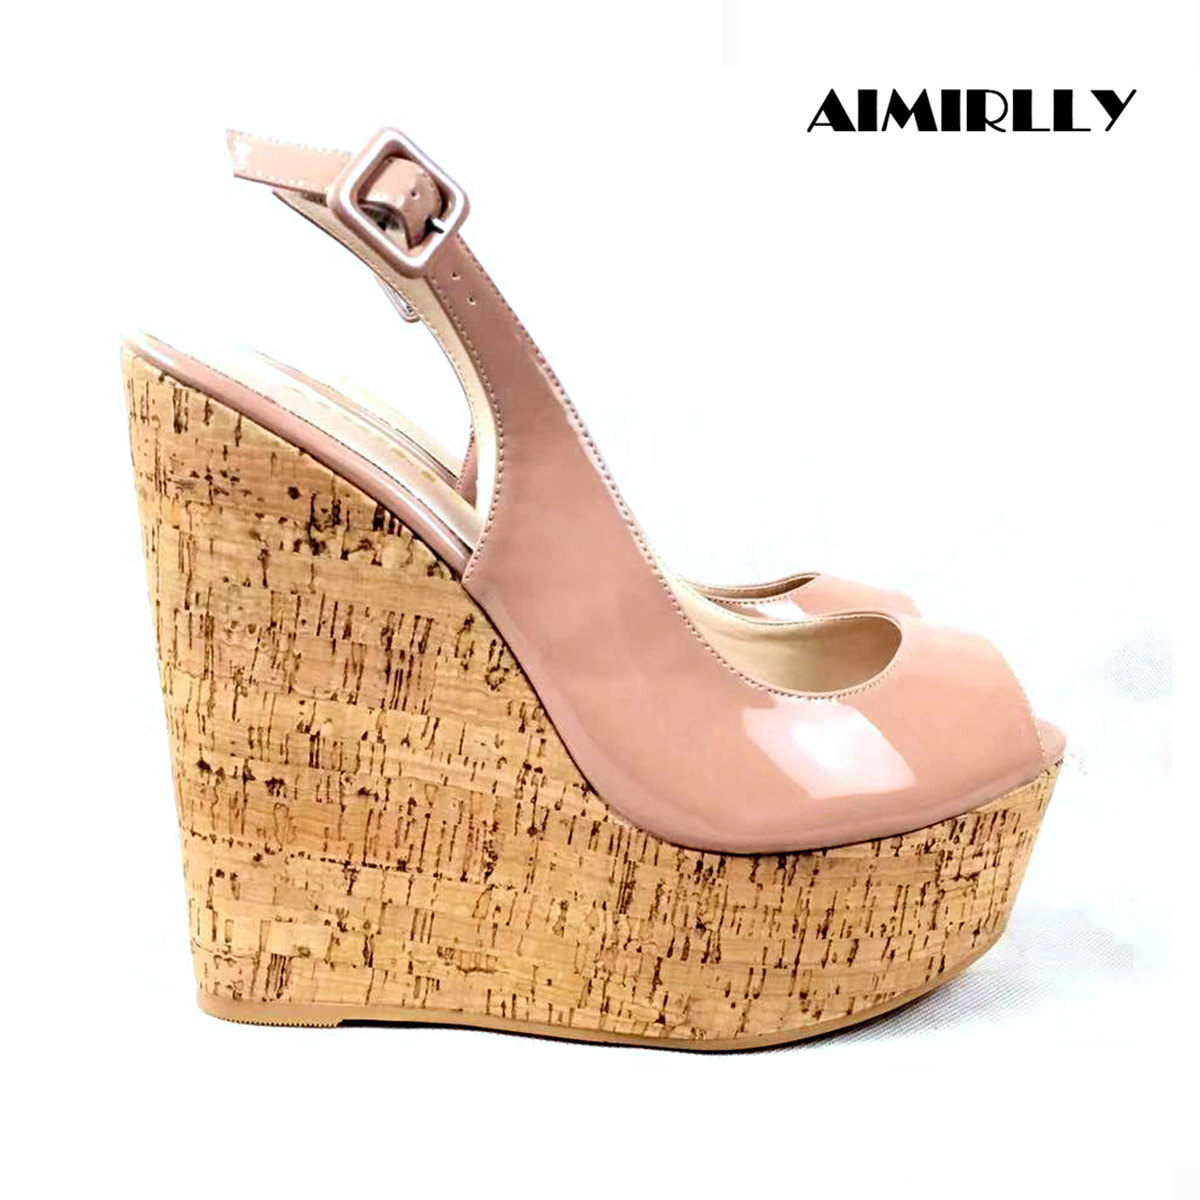 Aimirlly Platform Sandals Wedge-Heels Cork Summer Shoes Comfortable Nude Pumps Fashion